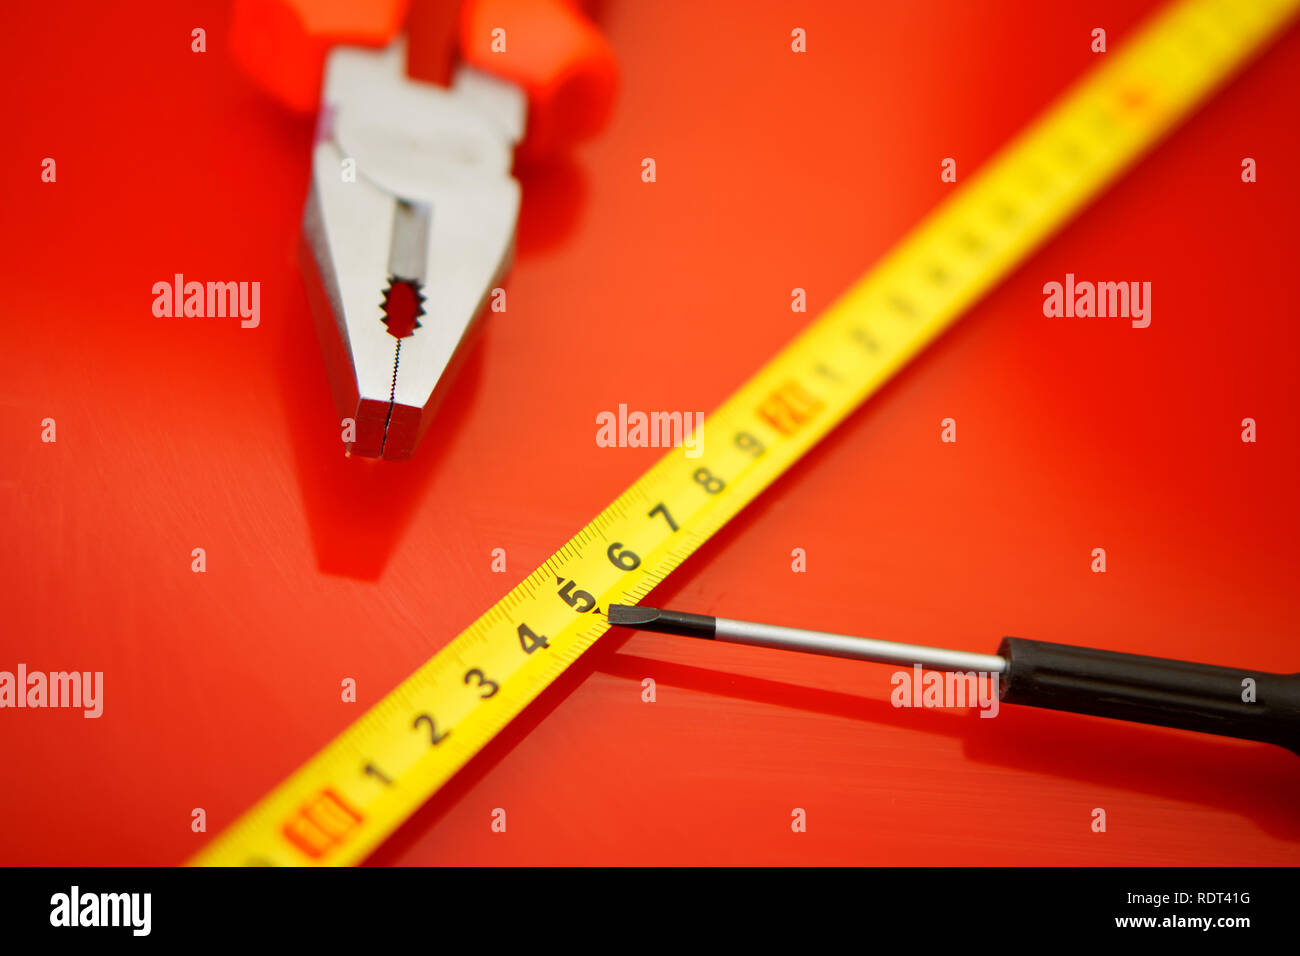 A tape measure, a screwdriver-tap and pliers lie on a red polished surface in a car repair shop. Performance of work. - Stock Image